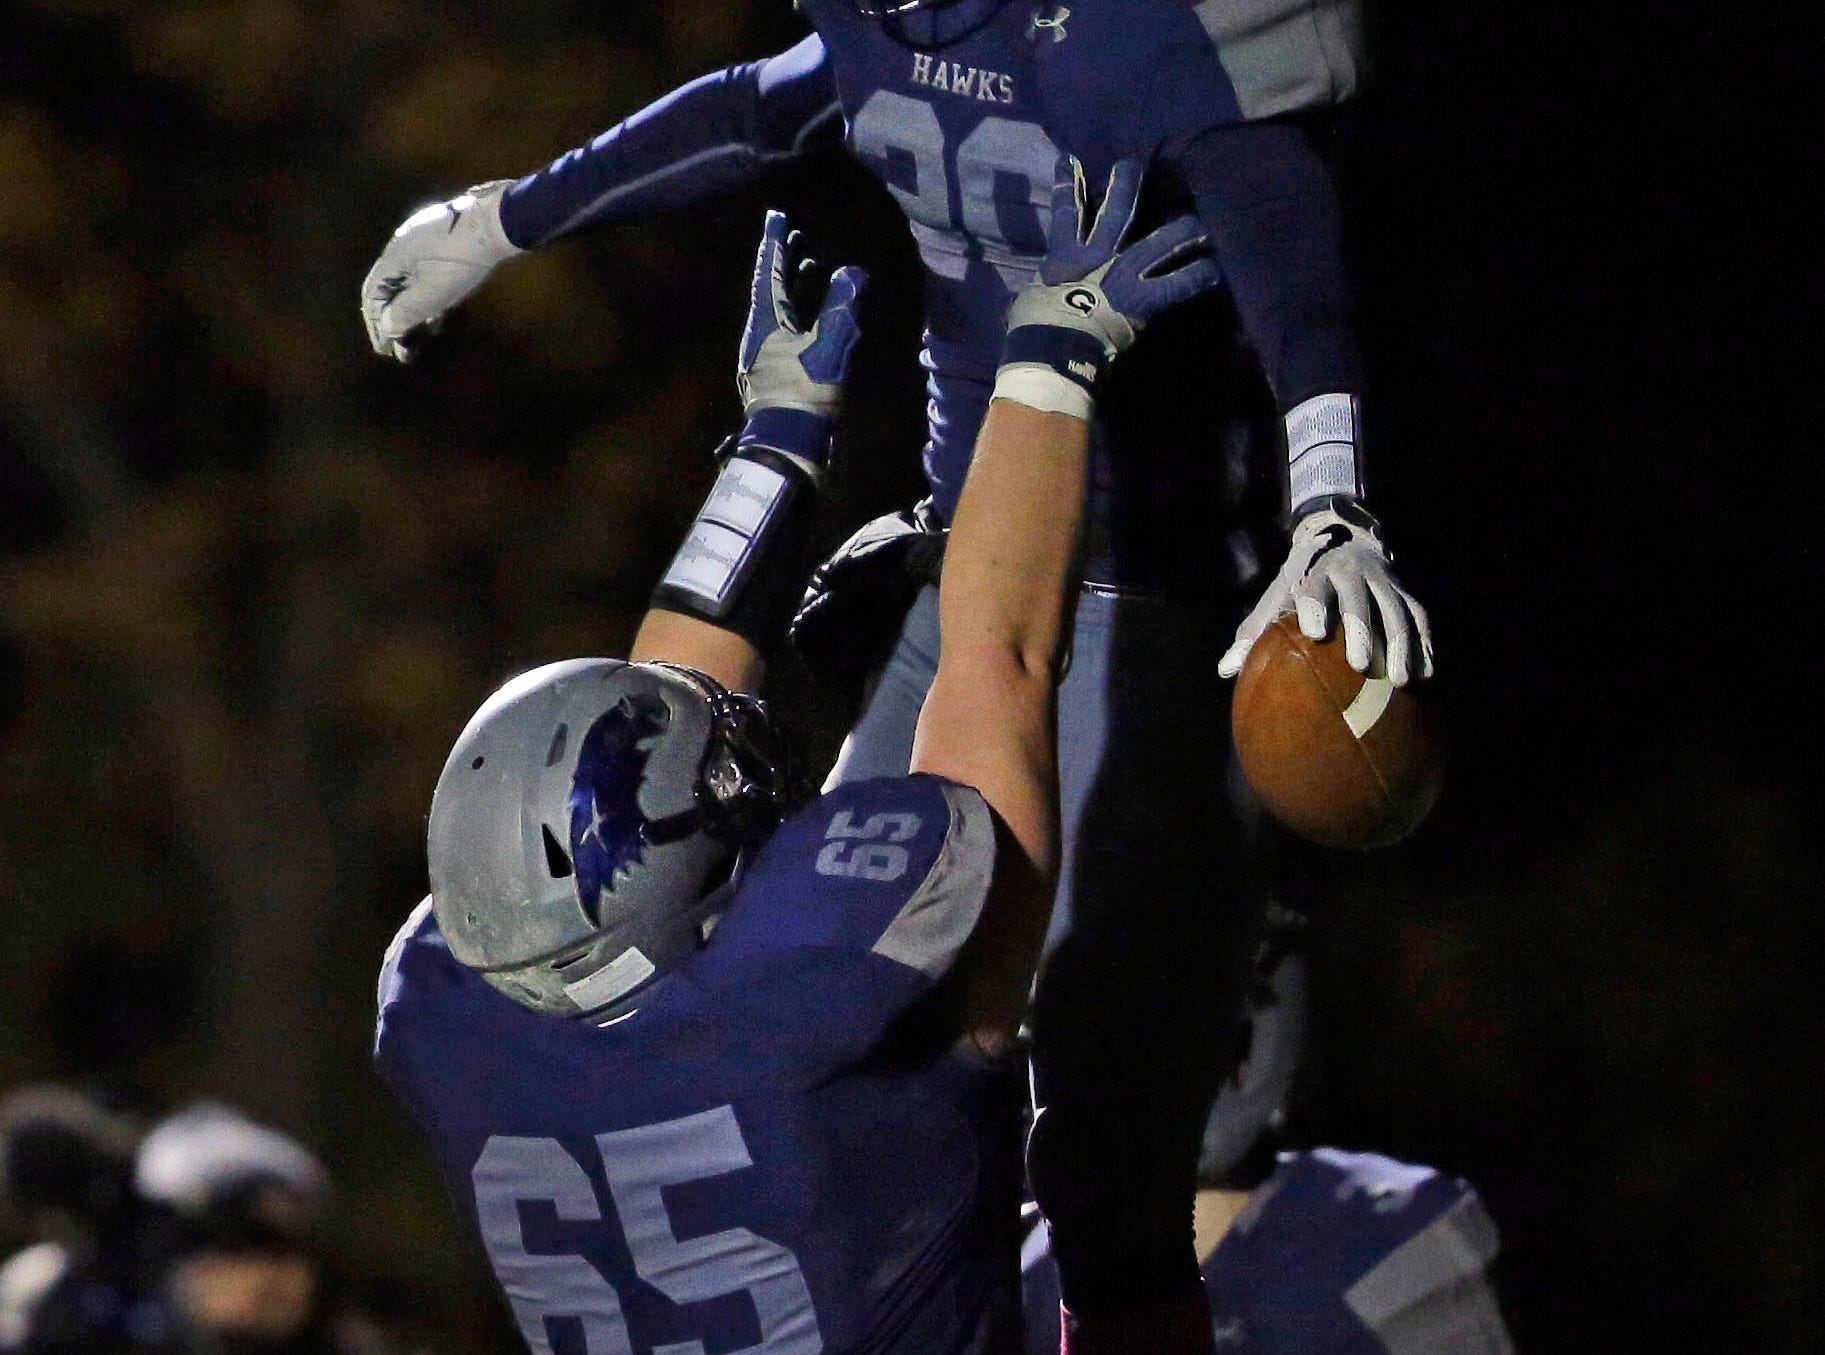 TJ Van Eperen (20) of Xavier celebrates a touchdown with Eli Blohowiak as the Hawks take on Waupaca in a Bay Conference football game Friday, October 12, 2018, at Rocky Bleier Field in Appleton, Wis.